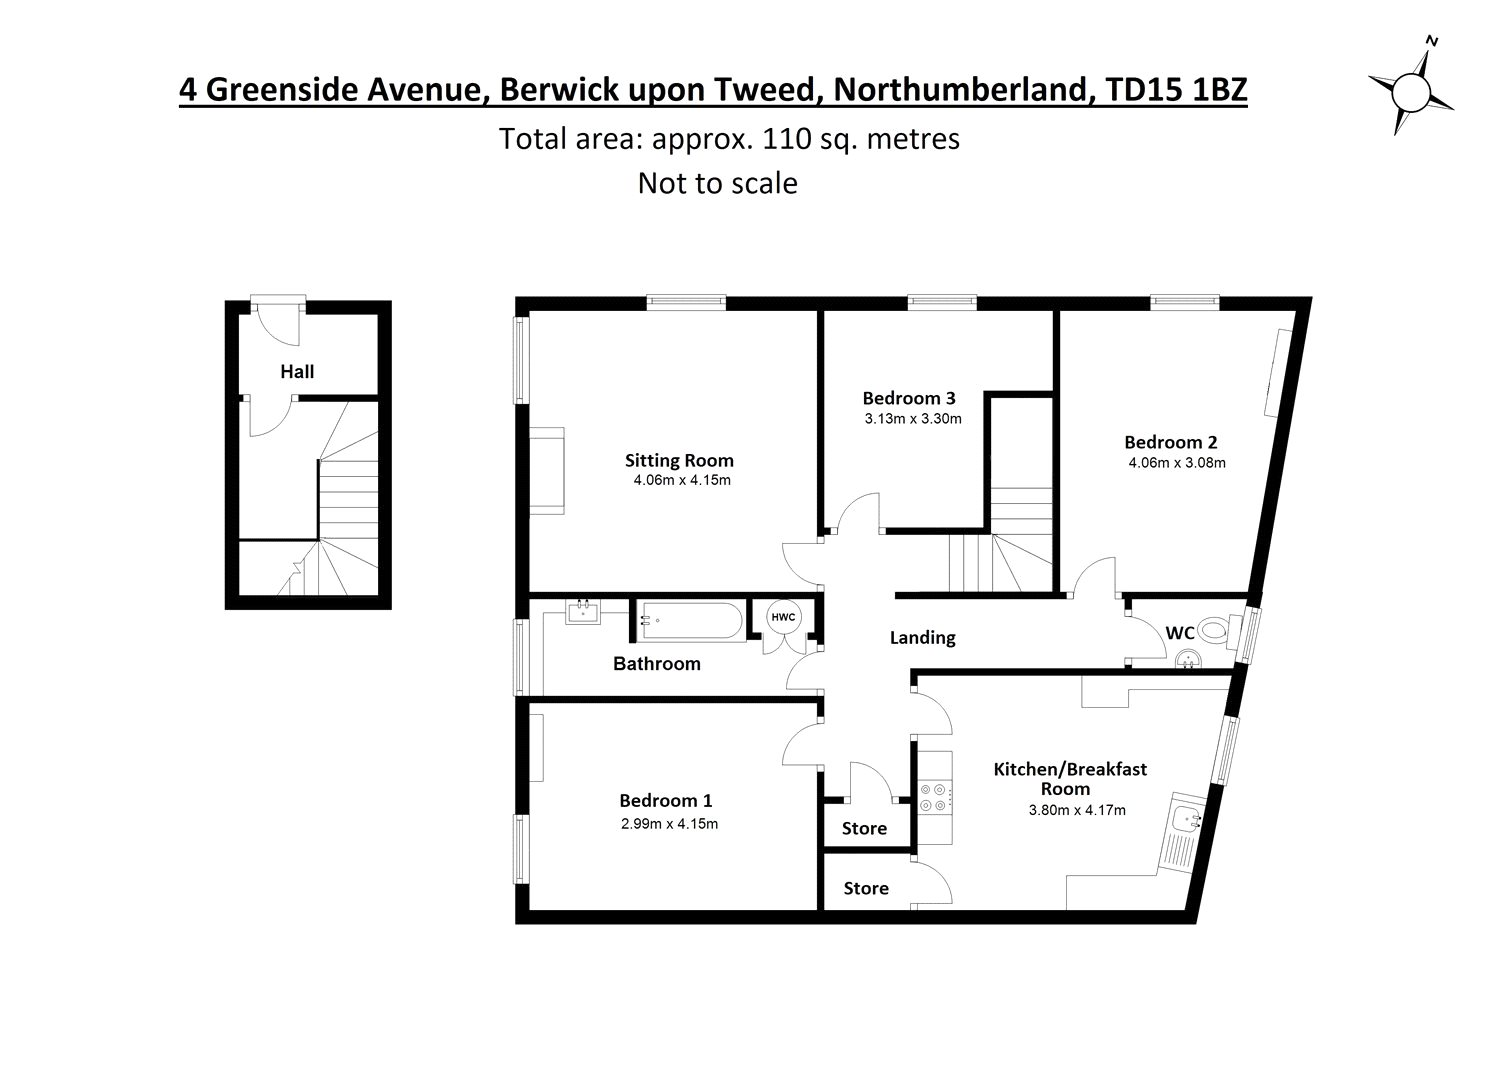 Floorplans for Greenside Avenue, Berwick-upon-Tweed, Northumberland, TD15